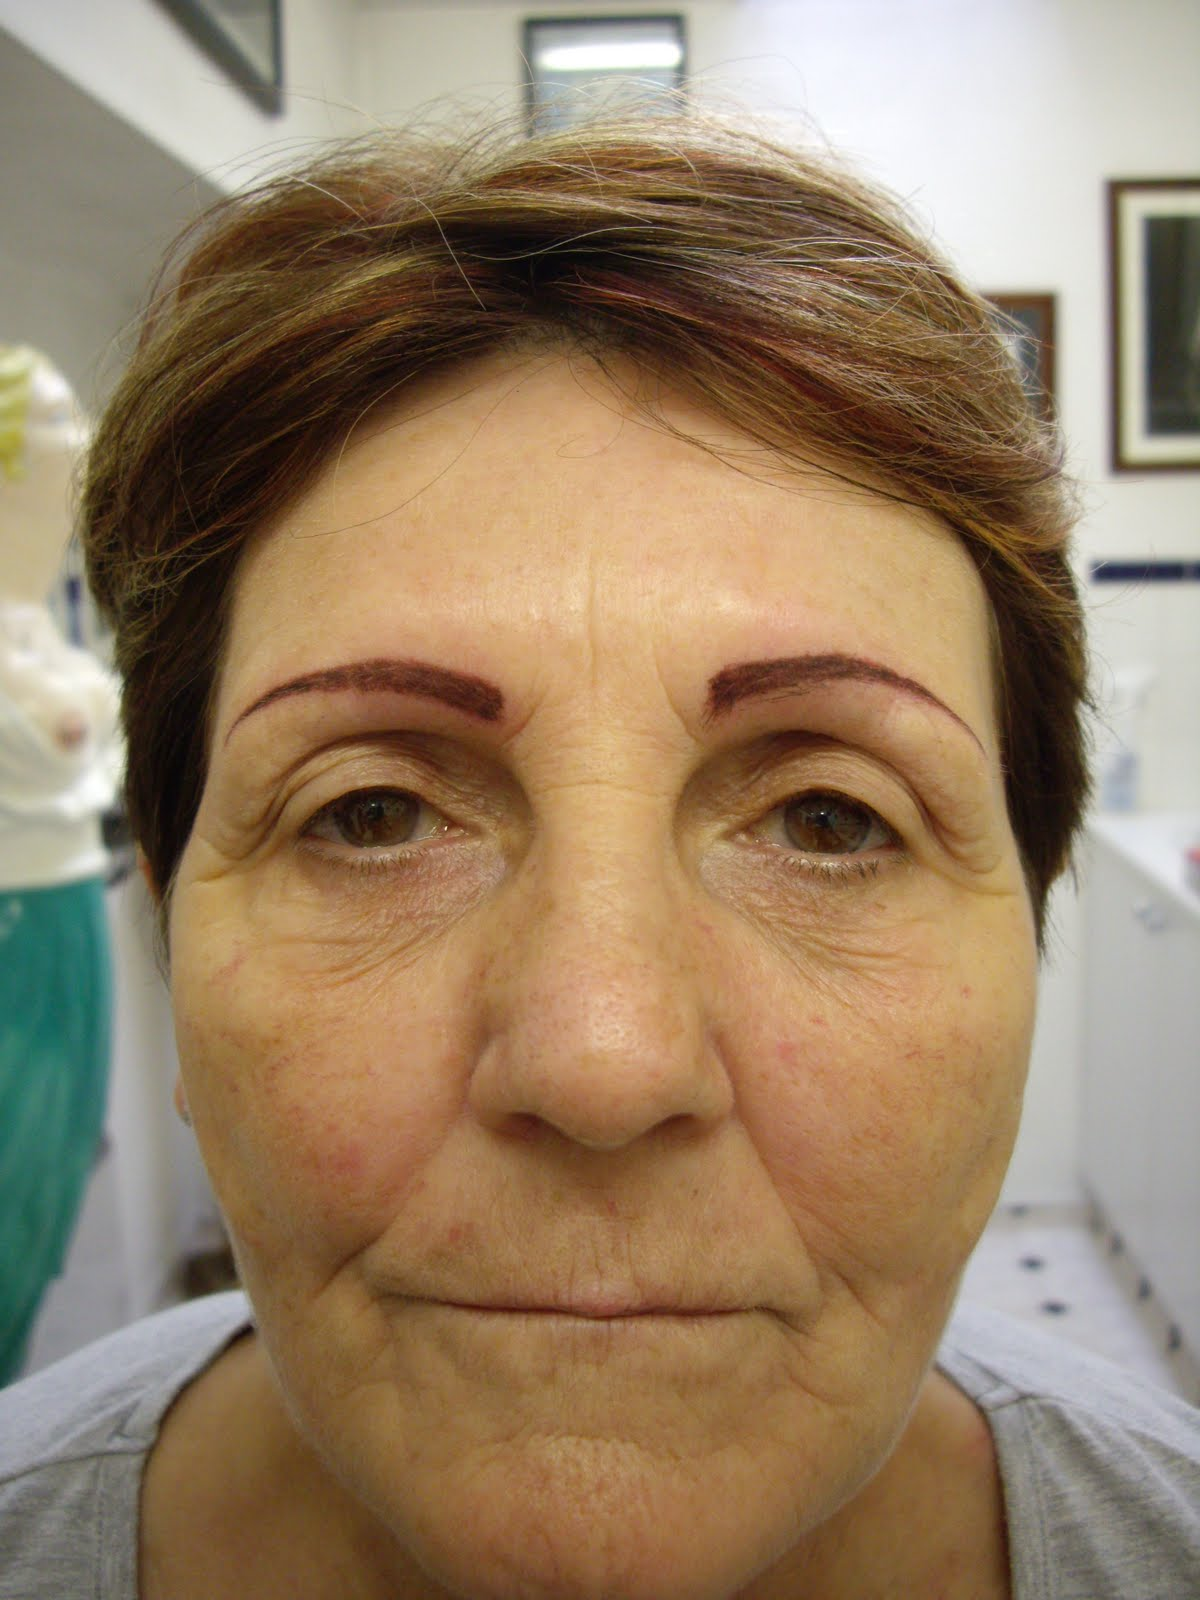 http://2.bp.blogspot.com/_adeUOIBbZ0k/TMLz5QAI5cI/AAAAAAAAALU/DYuQId0ouB0/s1600/cosmetic%20eyebrow%20tattooing%20results%20close%20up.JPG